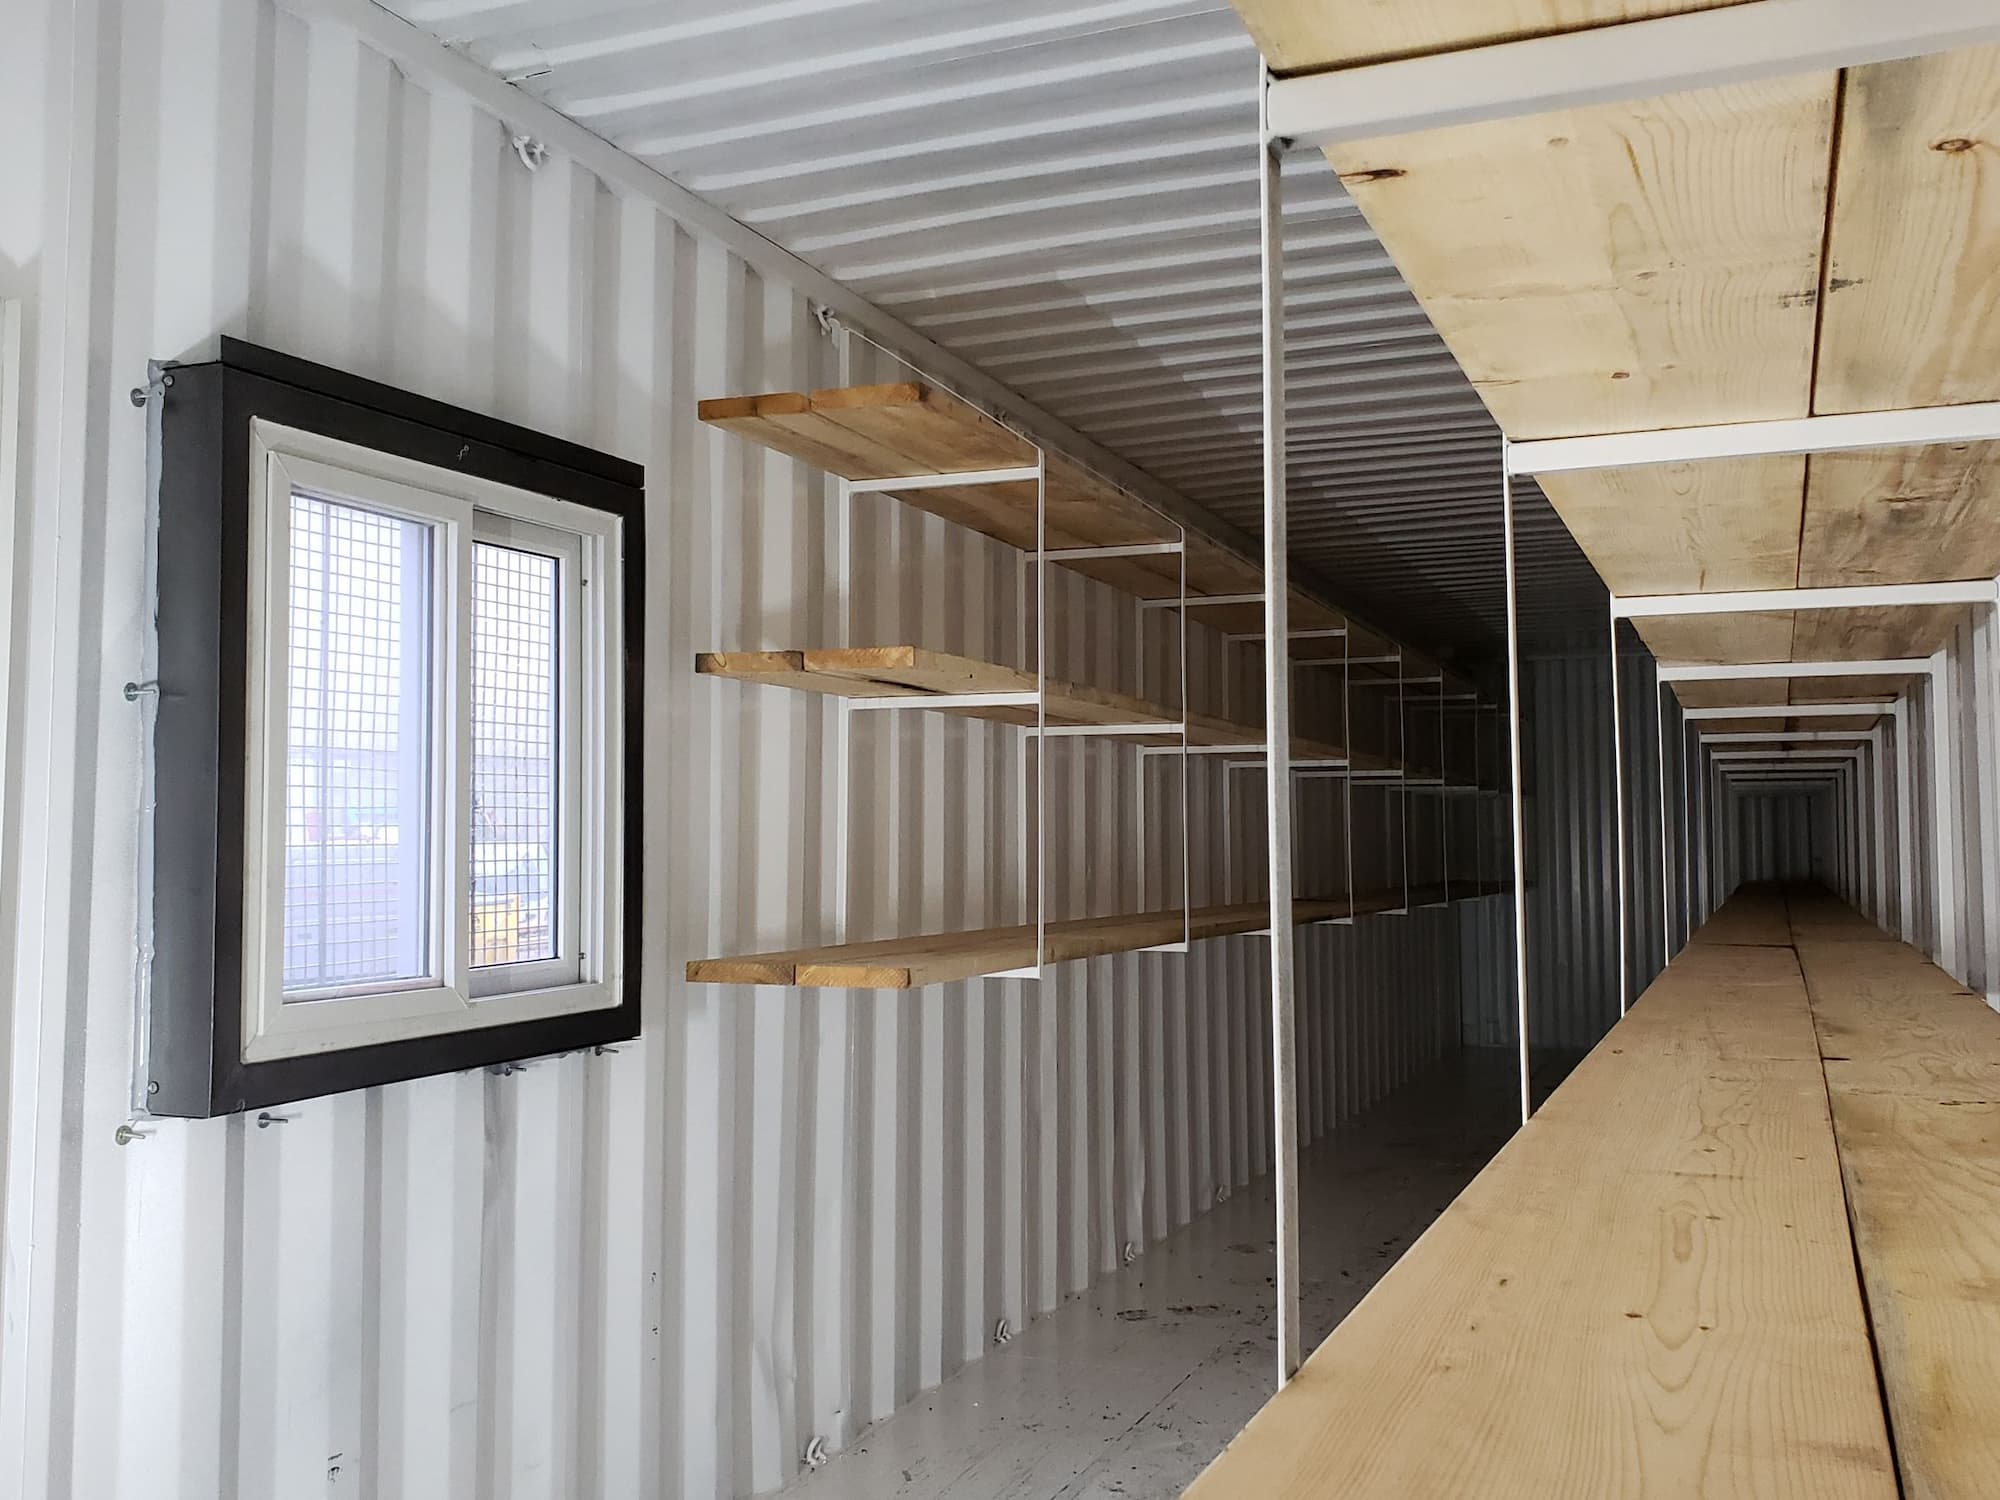 Sea can storage and shelving solutions